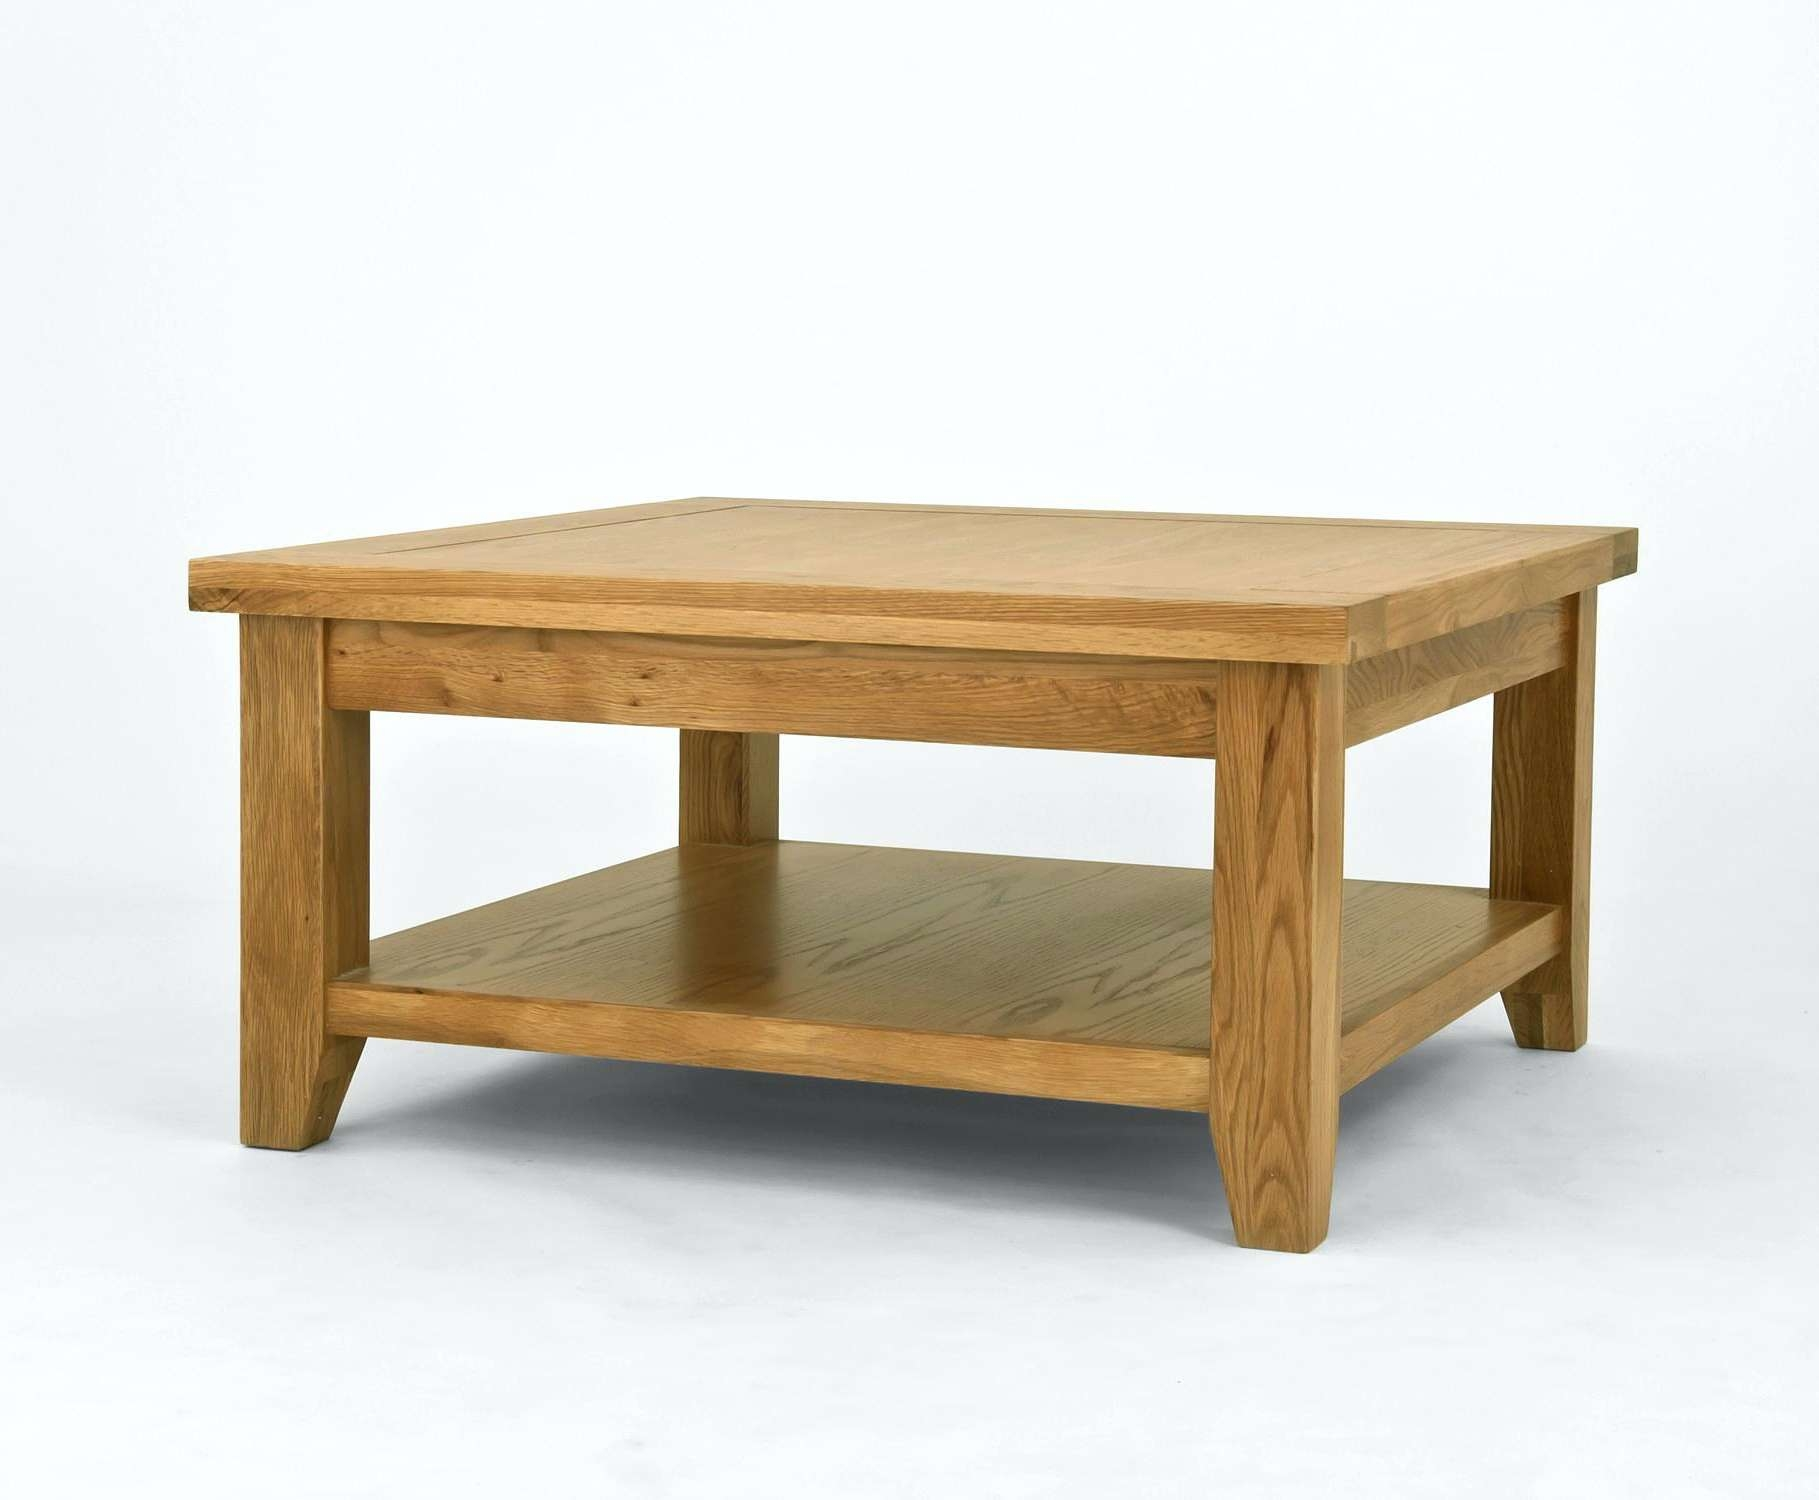 Favorite Oak Coffee Table With Shelf For Provence Coffee Table Oak Square With Shelf Is An Extensive Solid (View 5 of 20)